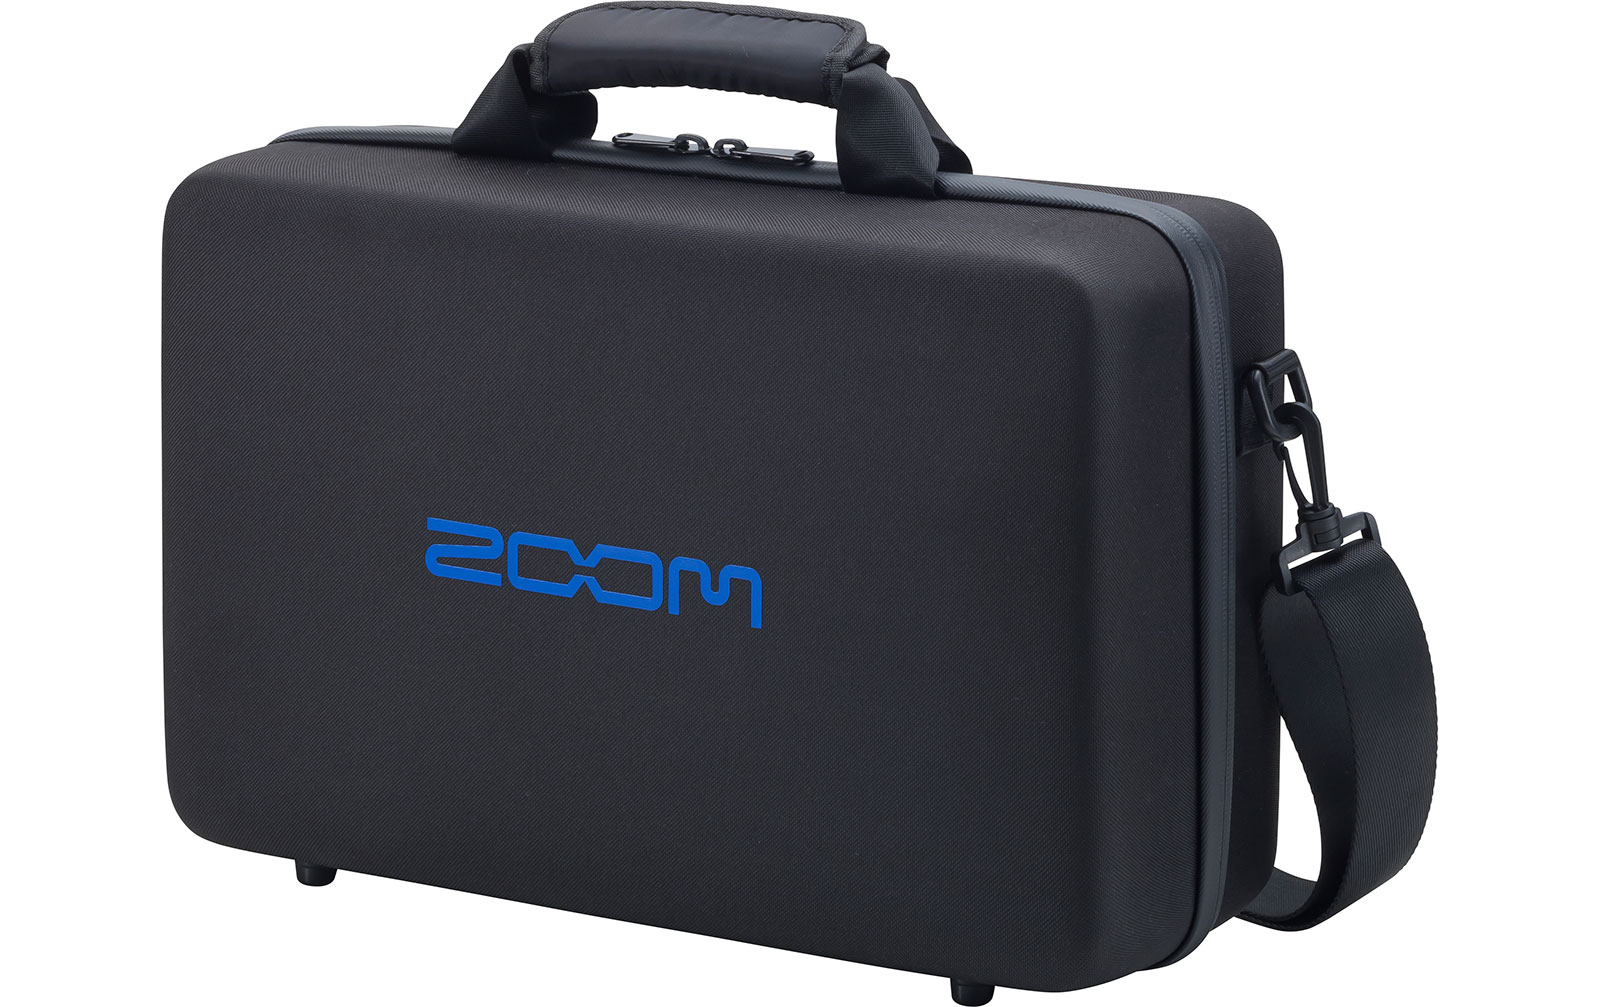 zoom-cbr-16-carrying-bag-for-r16-r24